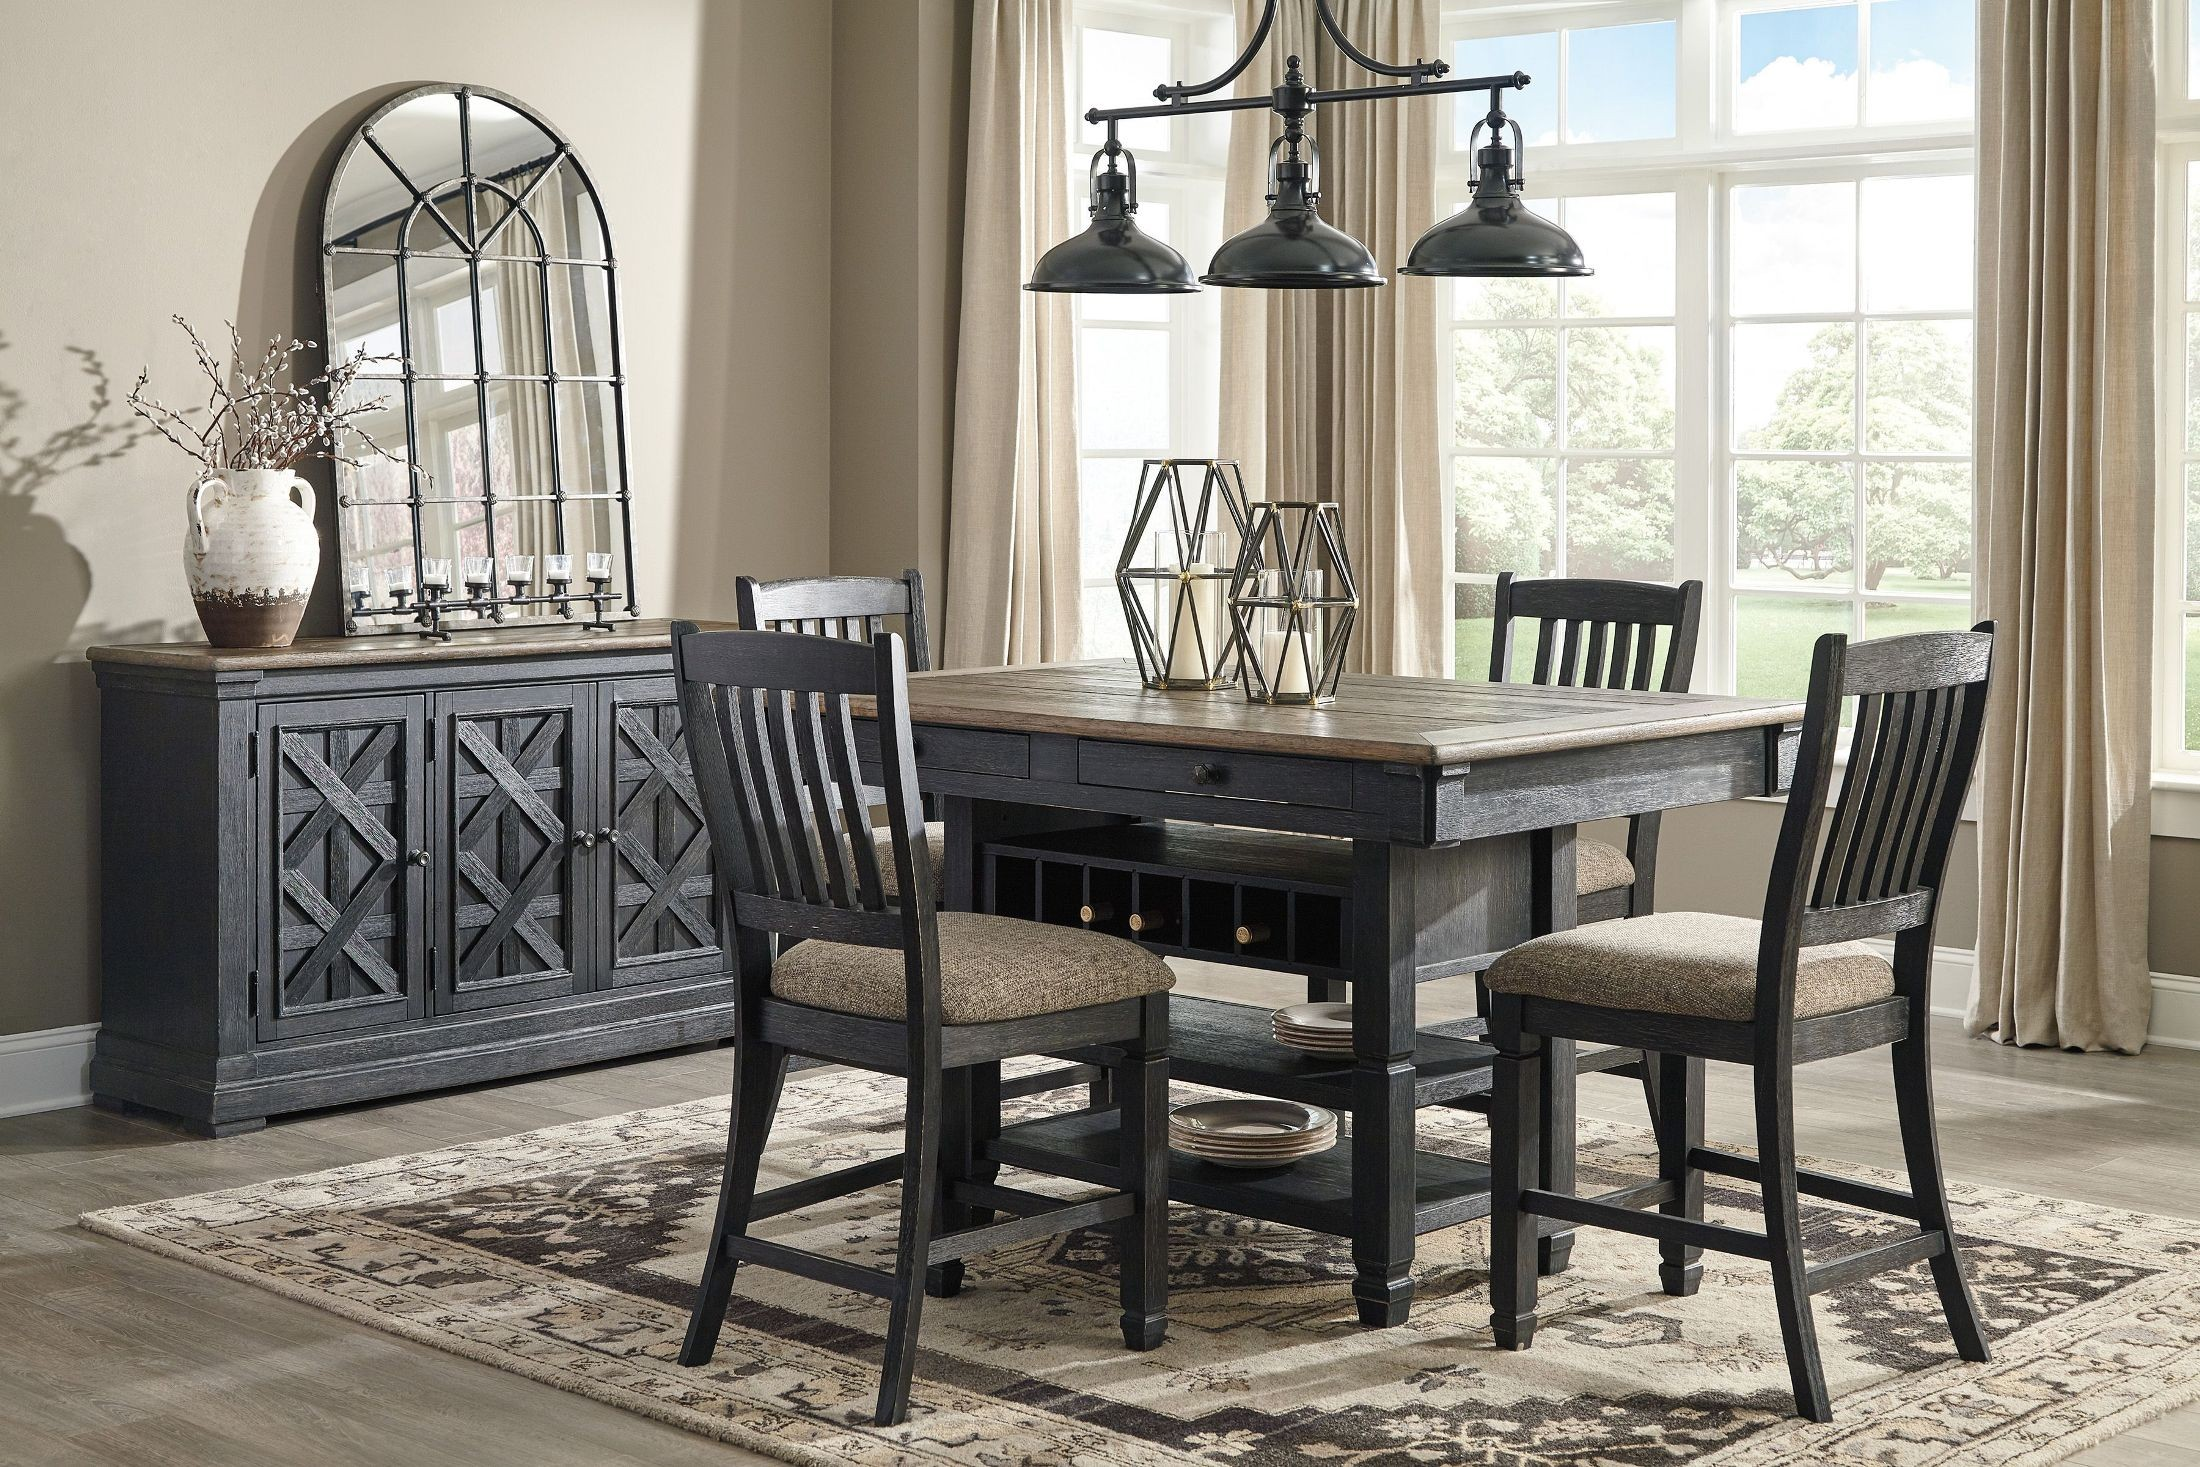 Tyler Creek Black And Gray Rectangular Counter Height Dining Room Set